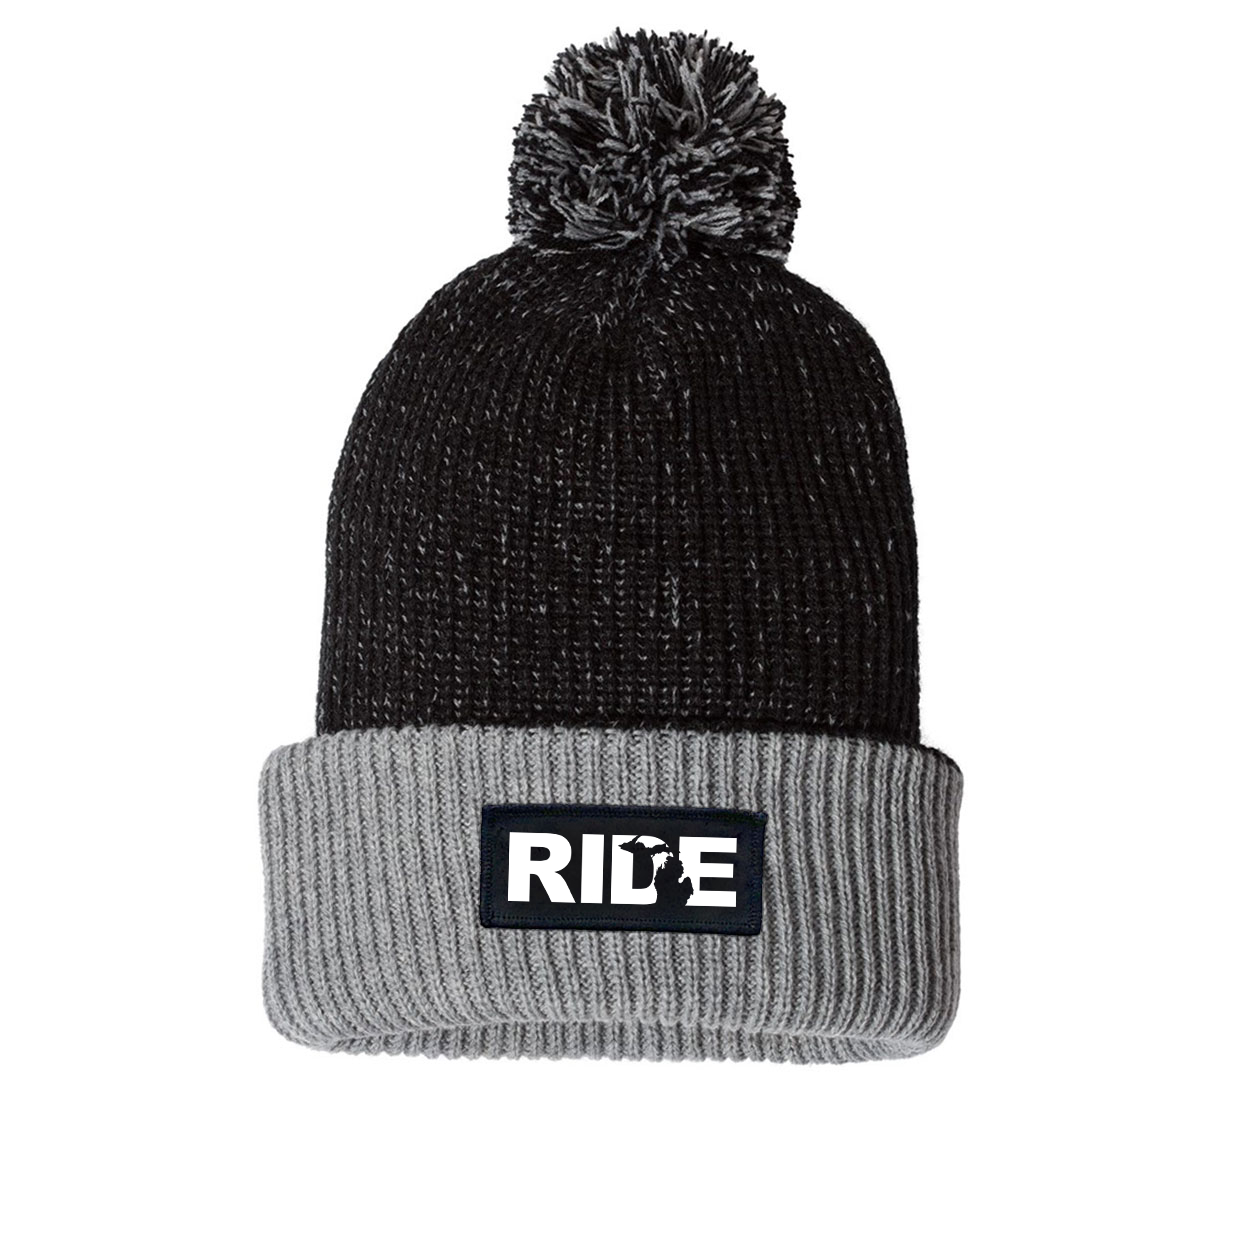 Ride Michigan Night Out Woven Patch Roll Up Pom Knit Beanie Black/Gray (White Logo)